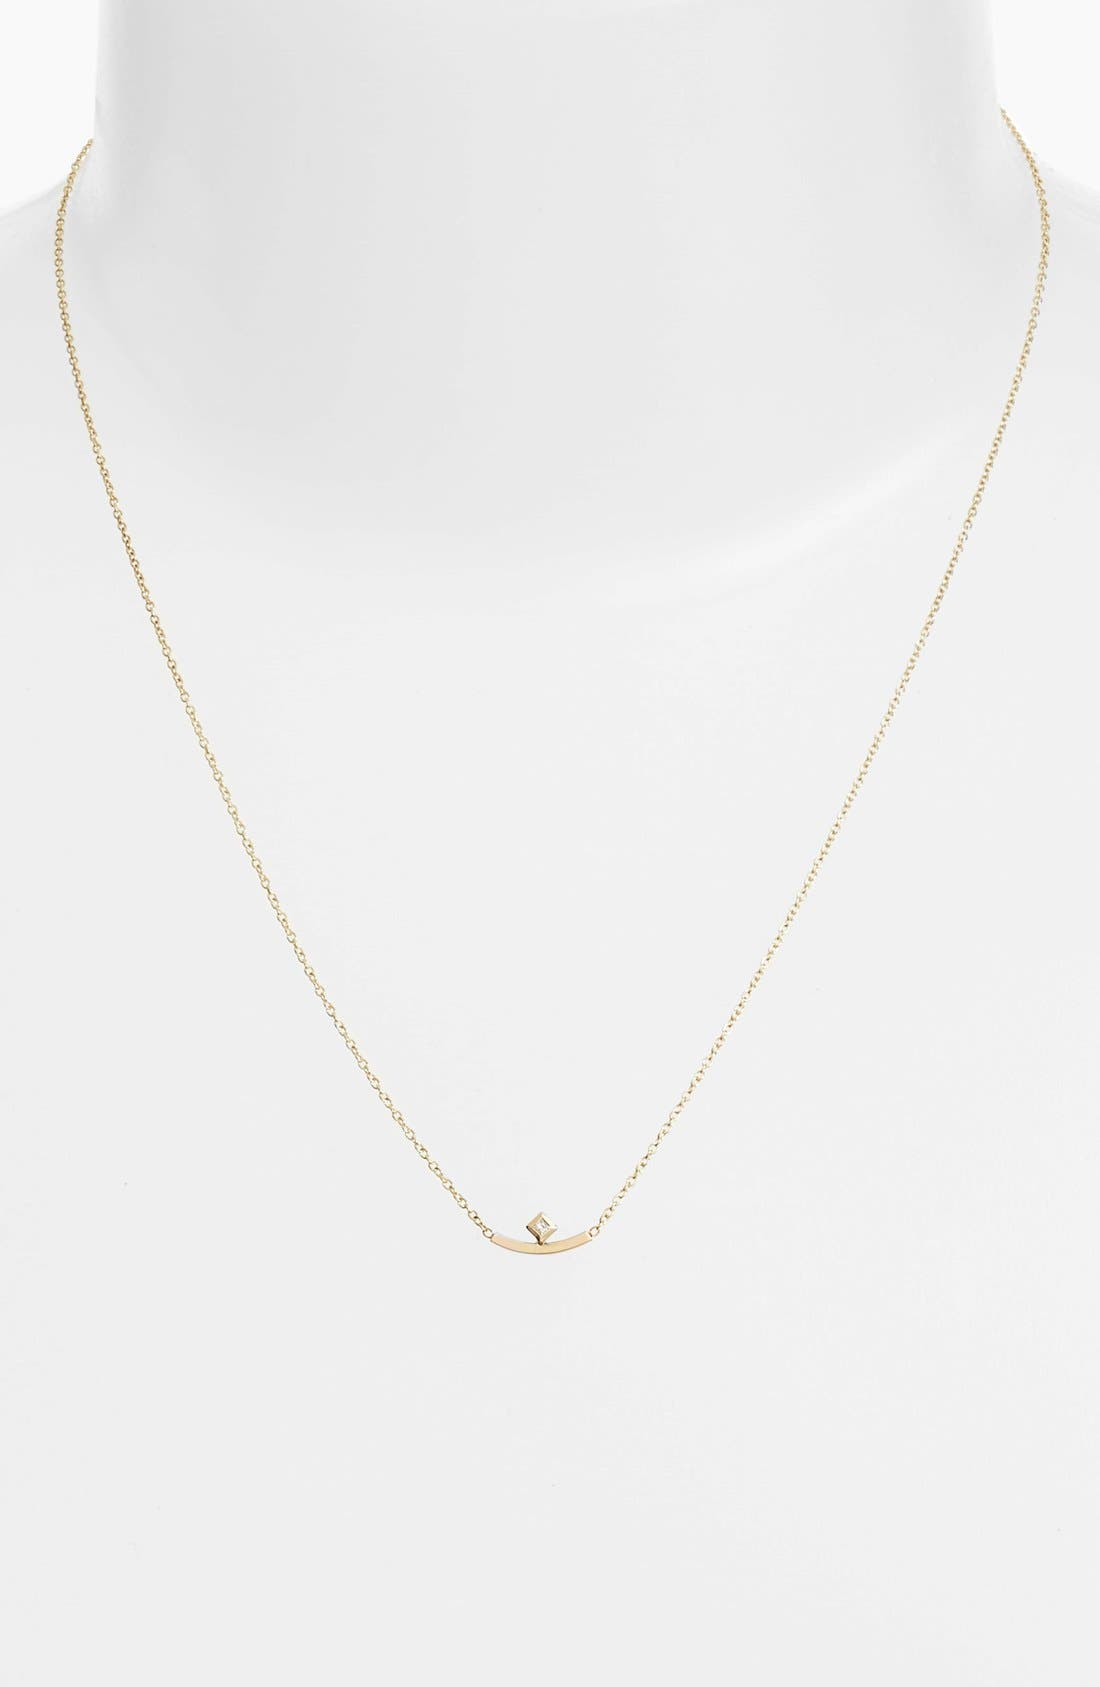 Diamond Curved Bar Necklace,                             Alternate thumbnail 2, color,                             Yellow Gold